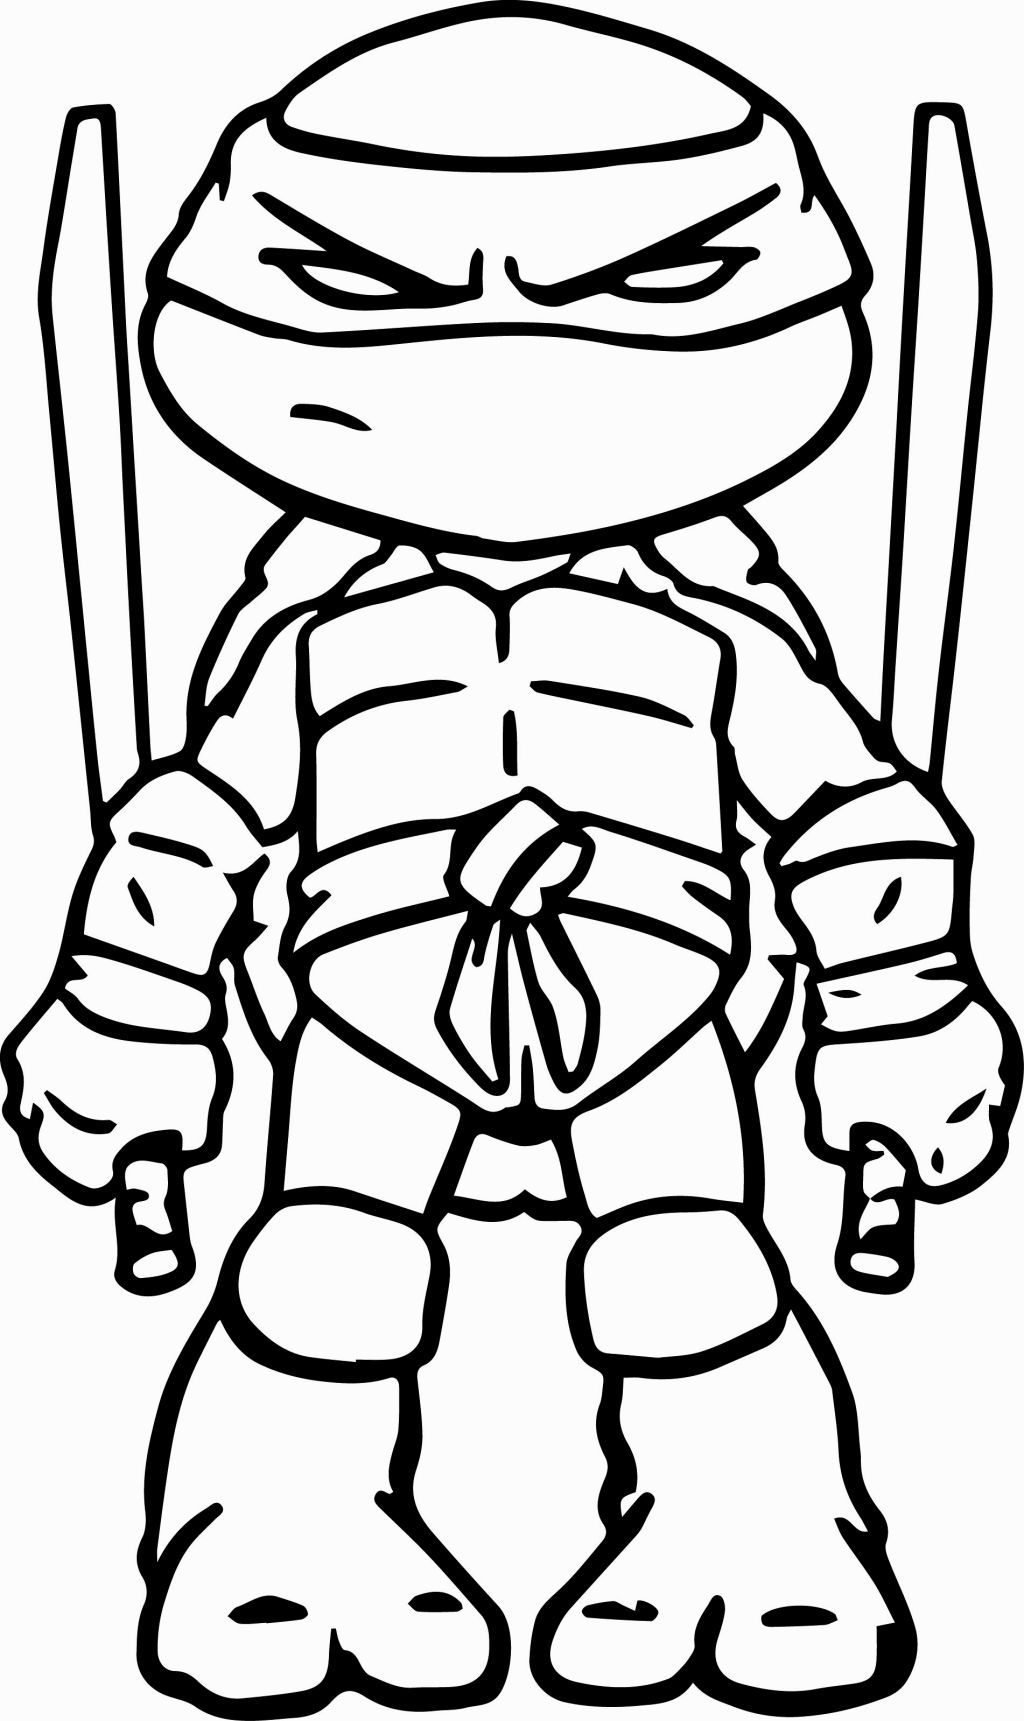 Ninja Coloring Pages Printable To Print Ninja Turtle Coloring Pages Turtle Coloring Pages Cartoon Coloring Pages